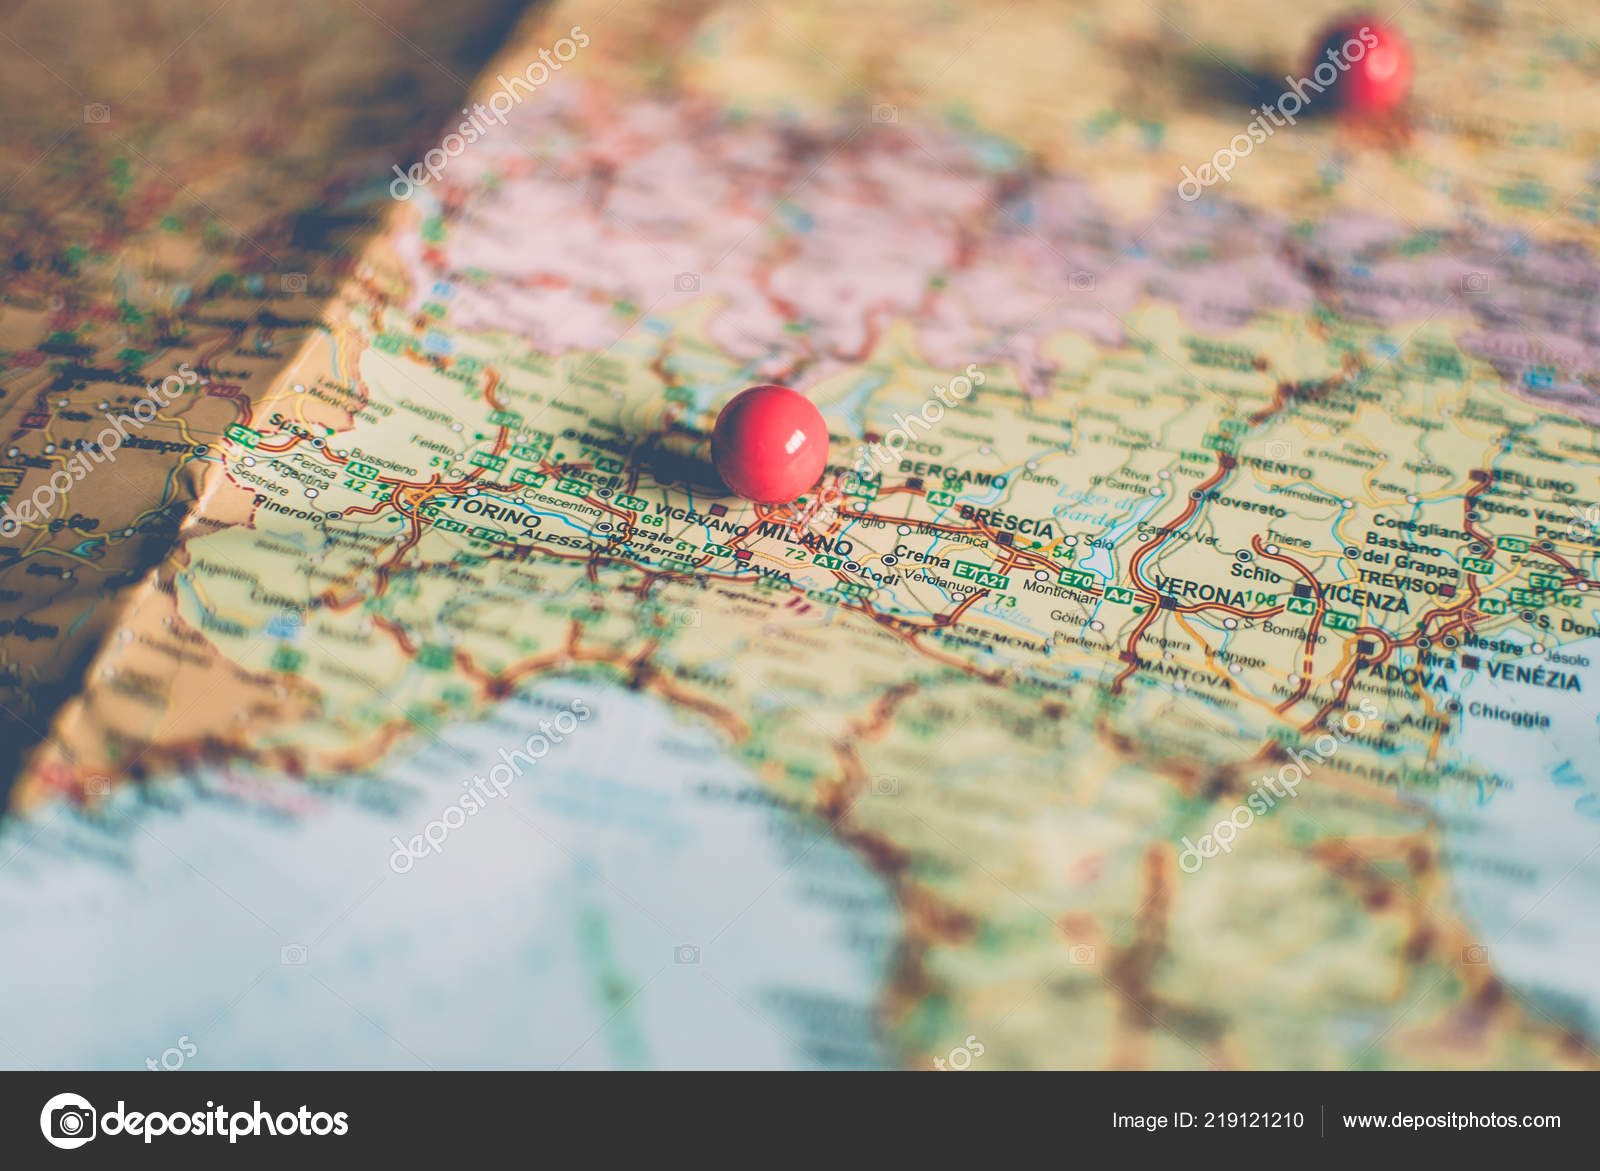 Picture of: Closeup Traveler Road Map Vintage Retro Colors Countries Cities Western Stock Photo C Yurii Zymovin 219121210